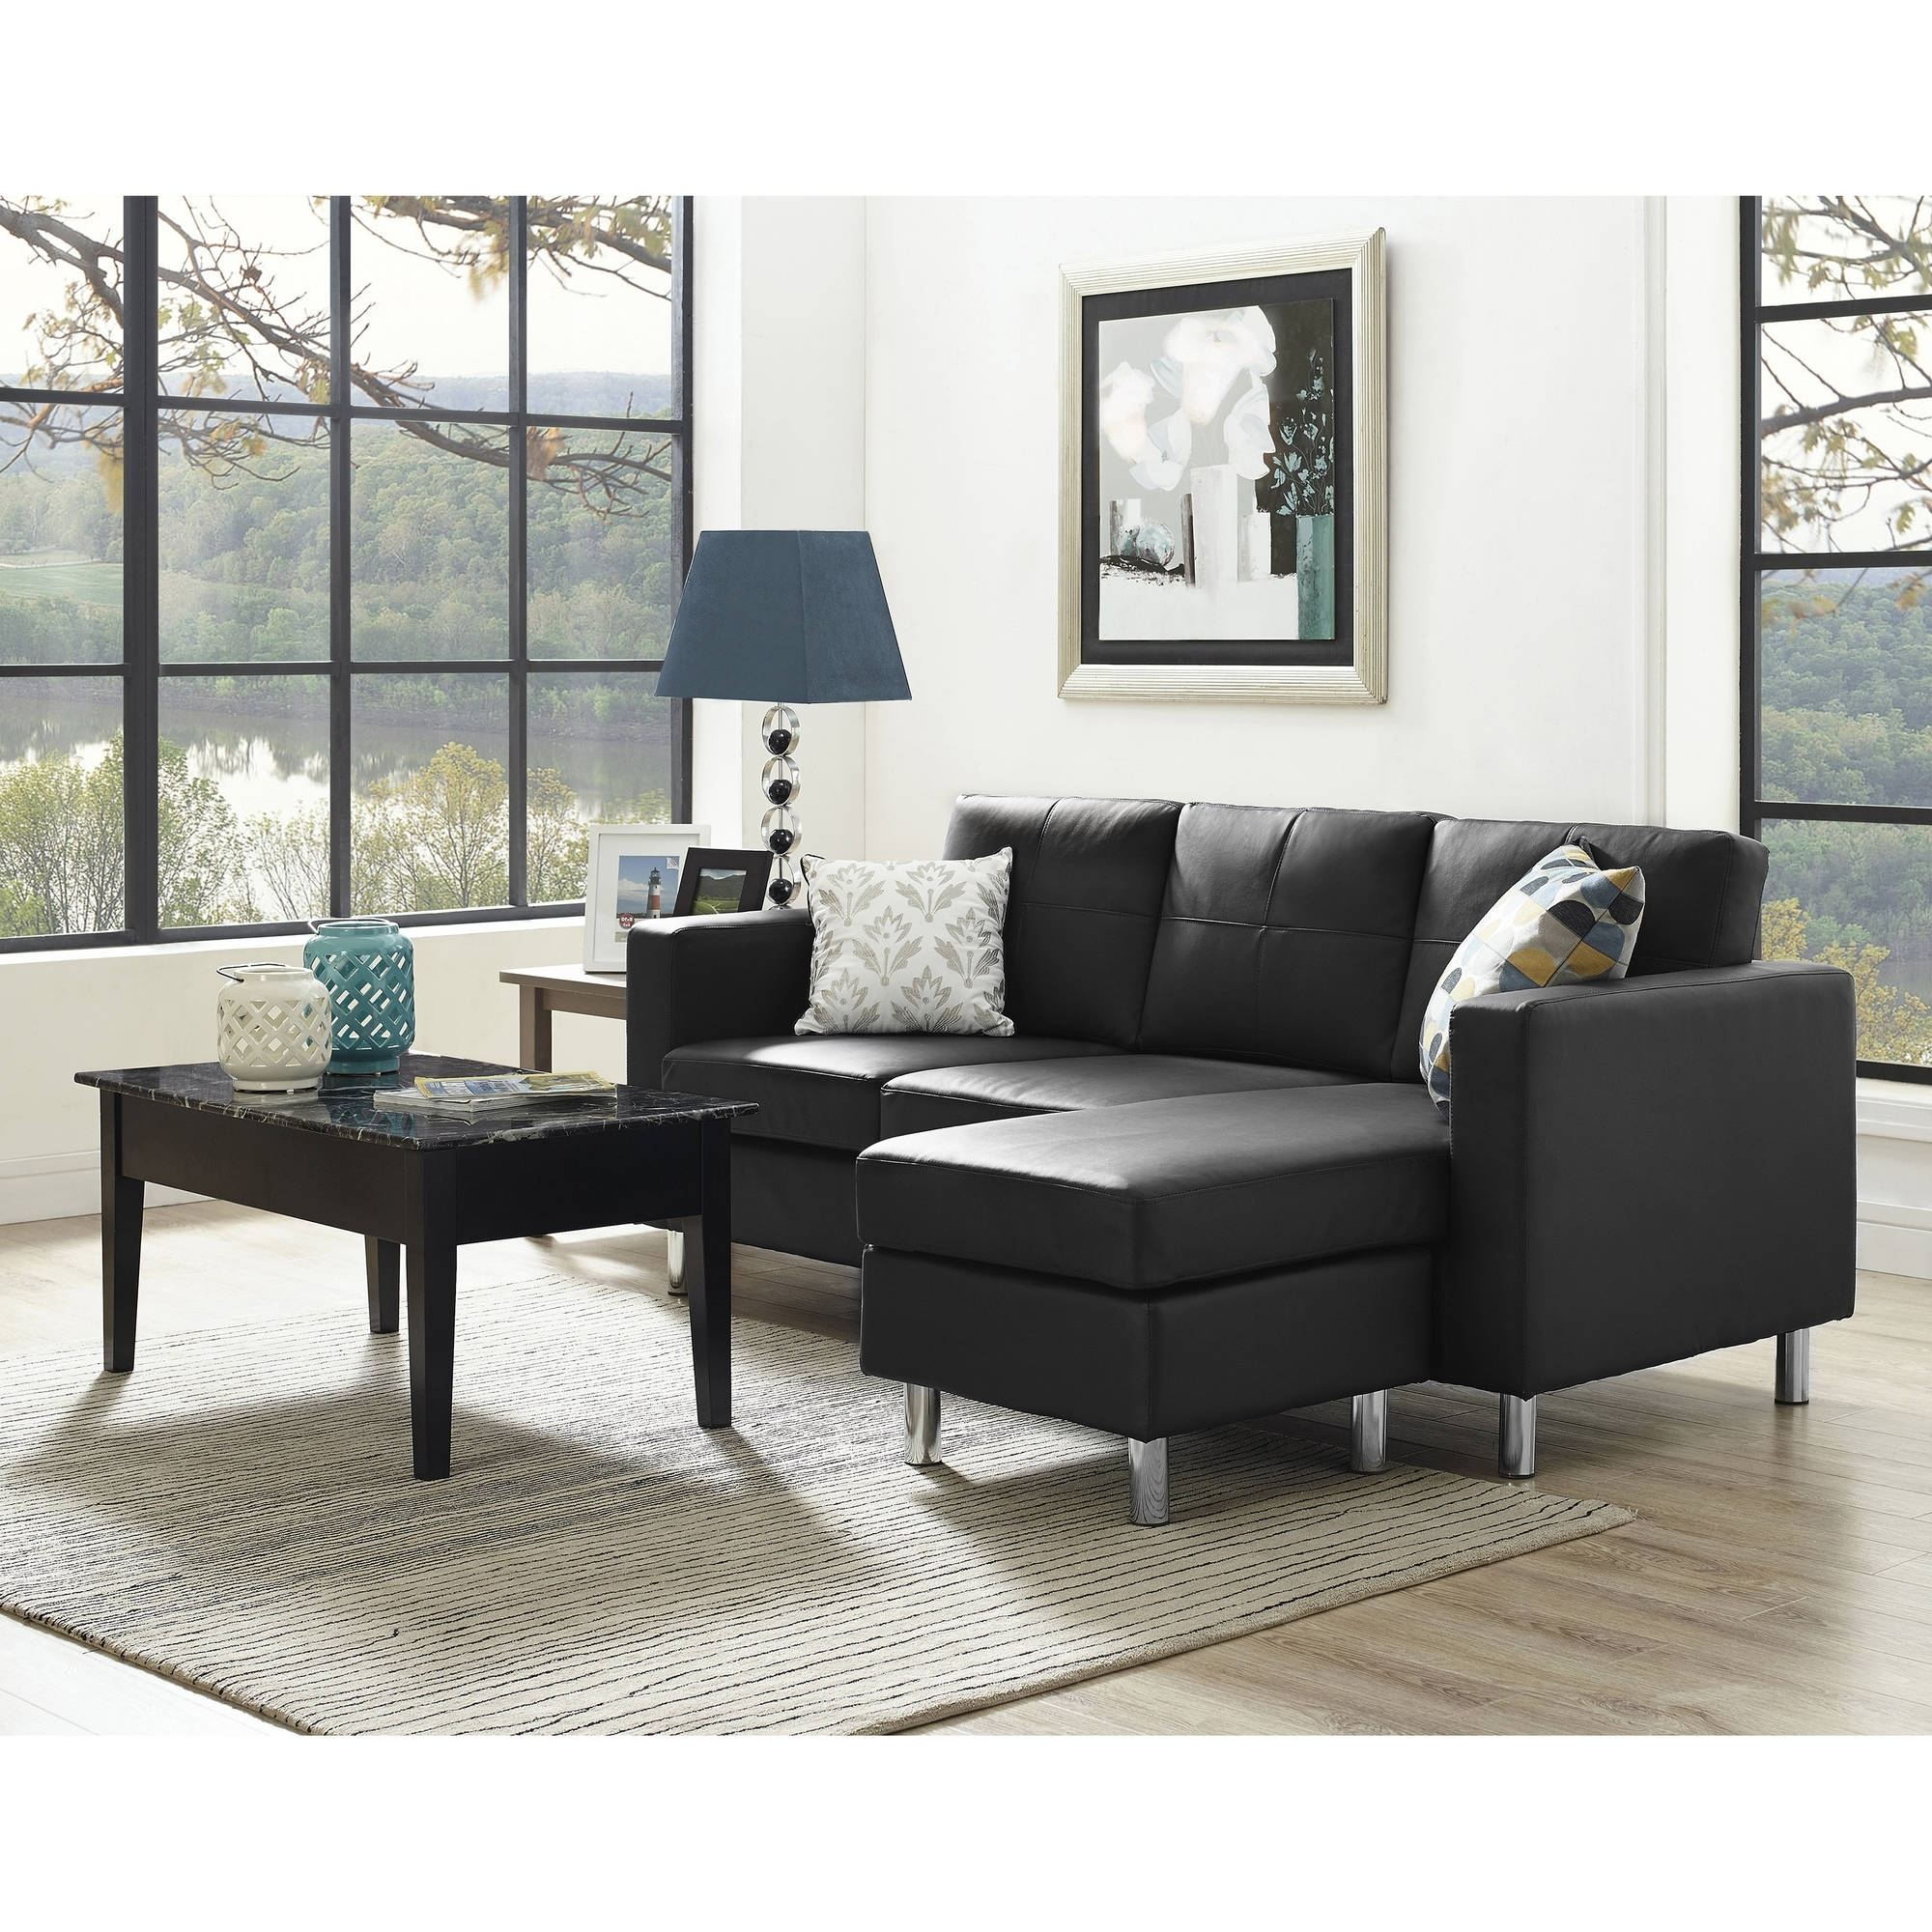 Small Sofas And Chairs Regarding 2018 Dorel Living Small Spaces Configurable Sectional Sofa, Multiple (View 17 of 20)